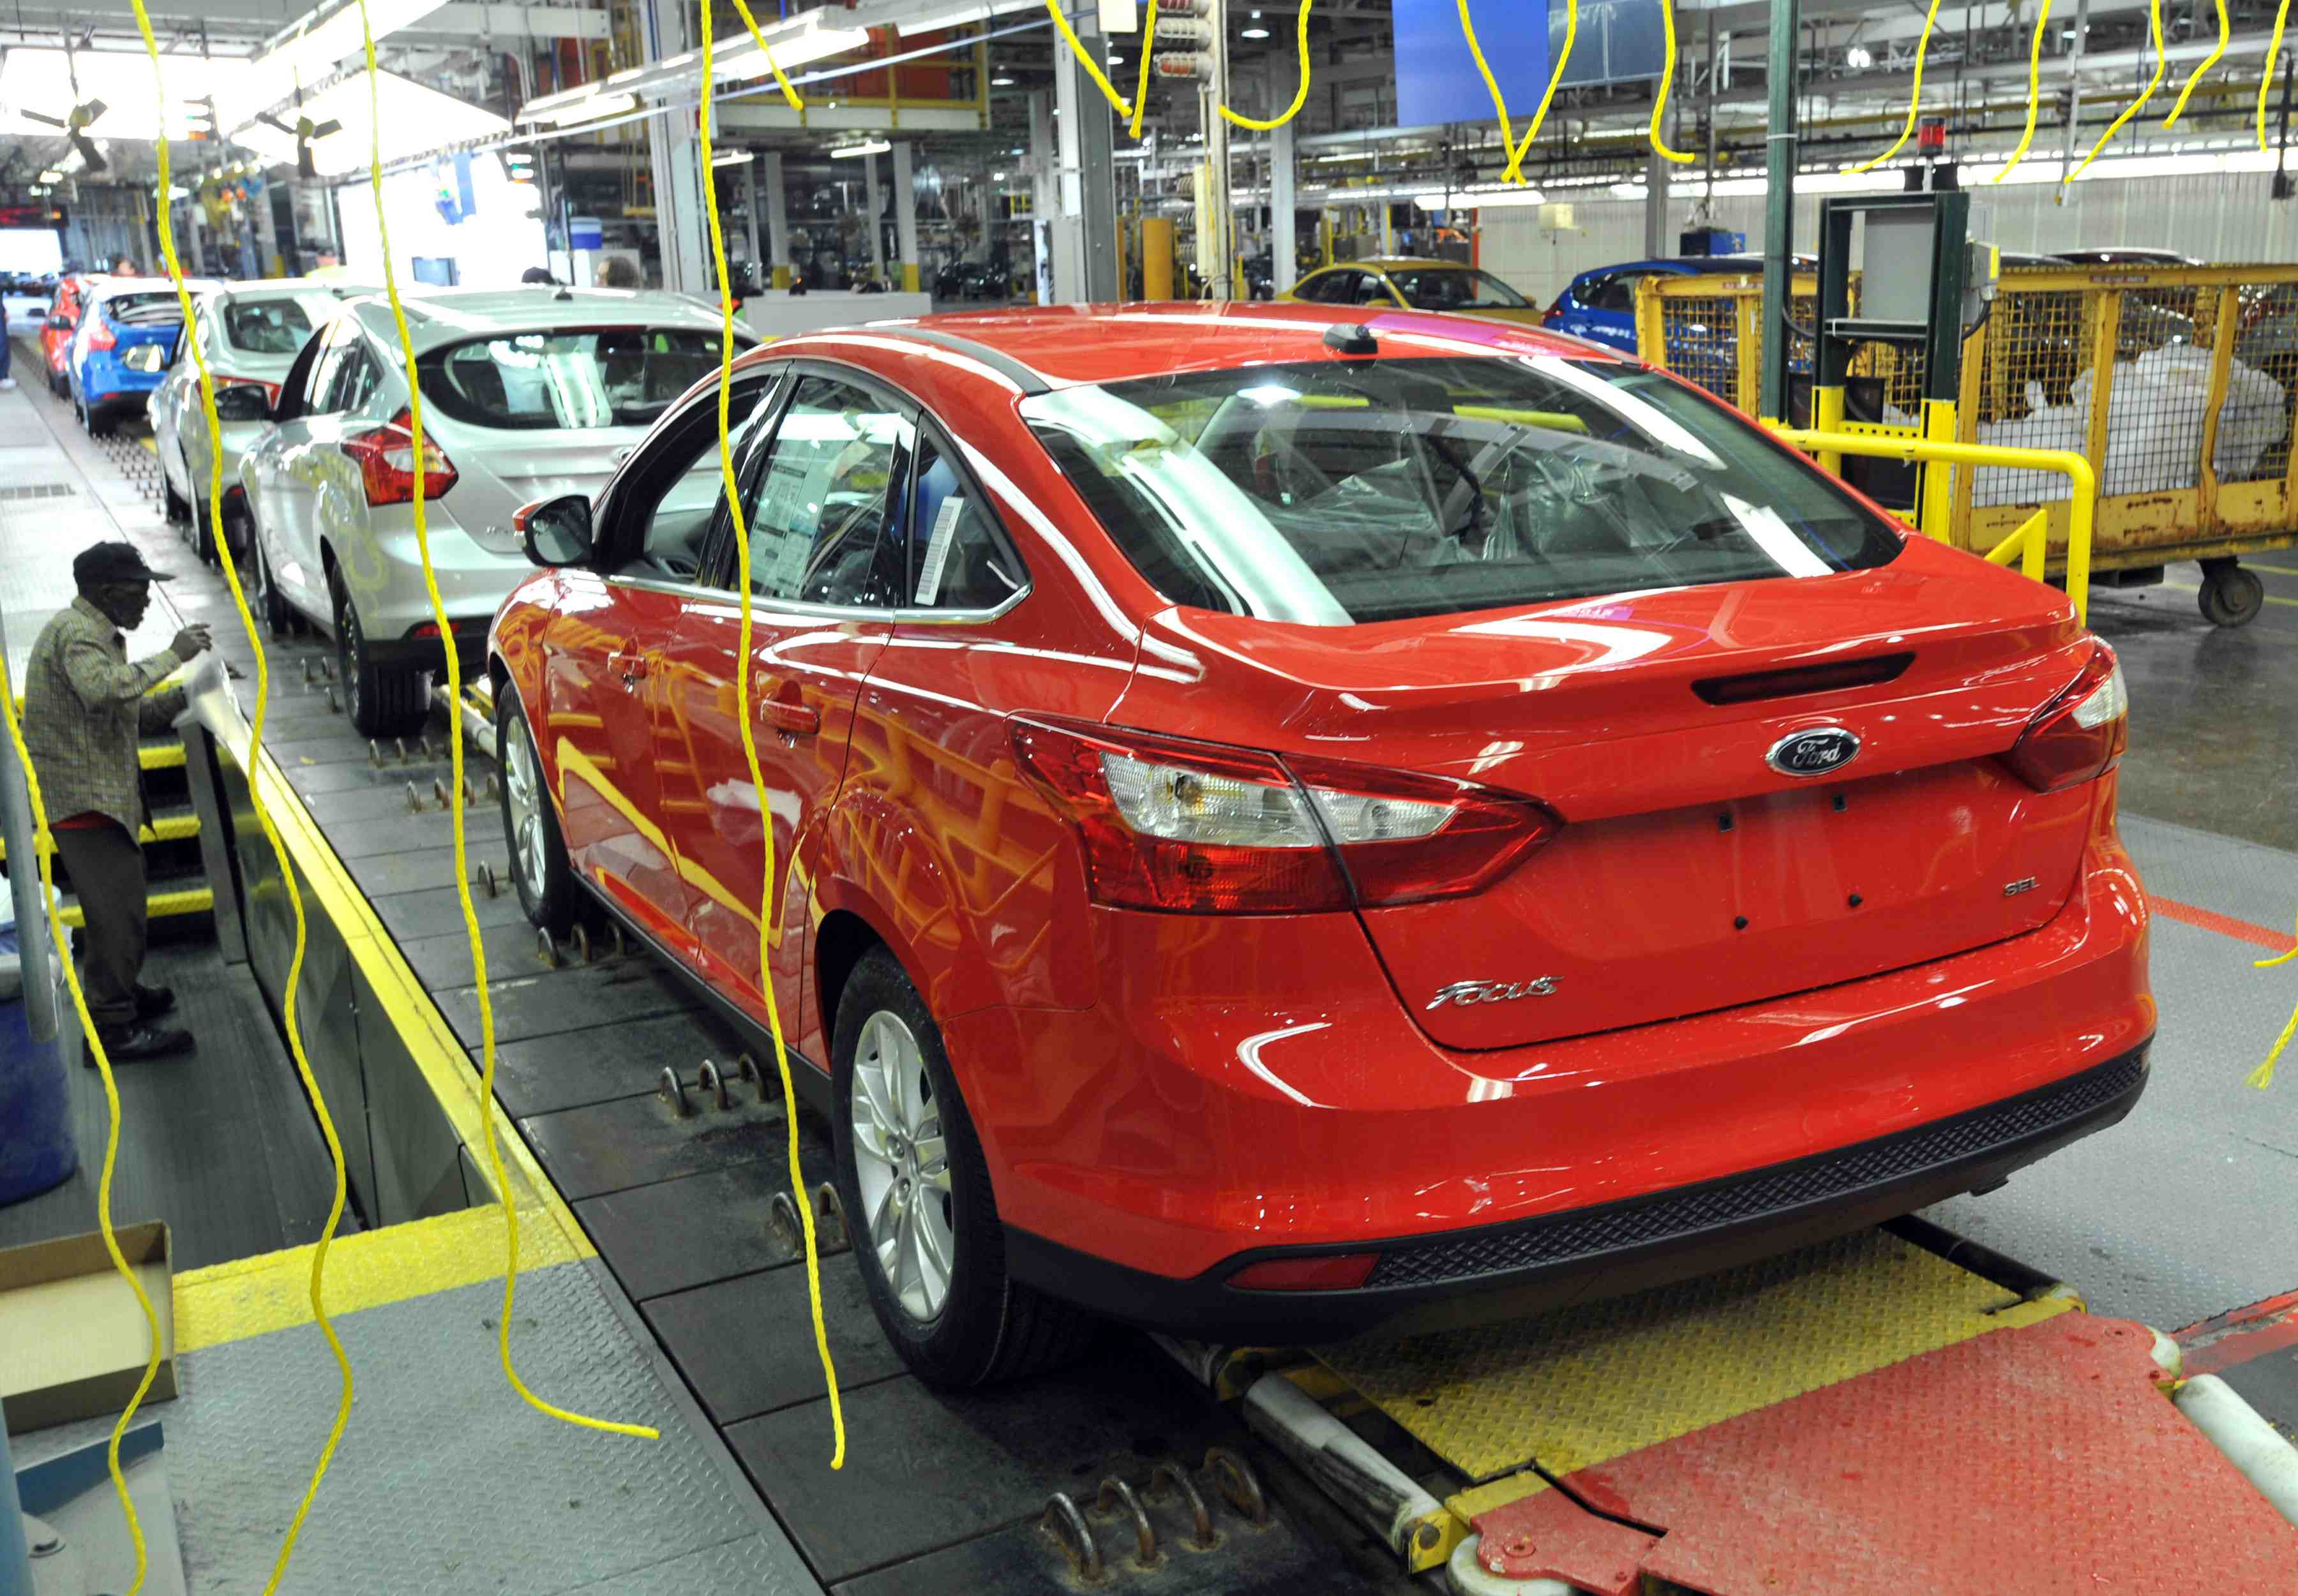 Ford focus assembly plants #8